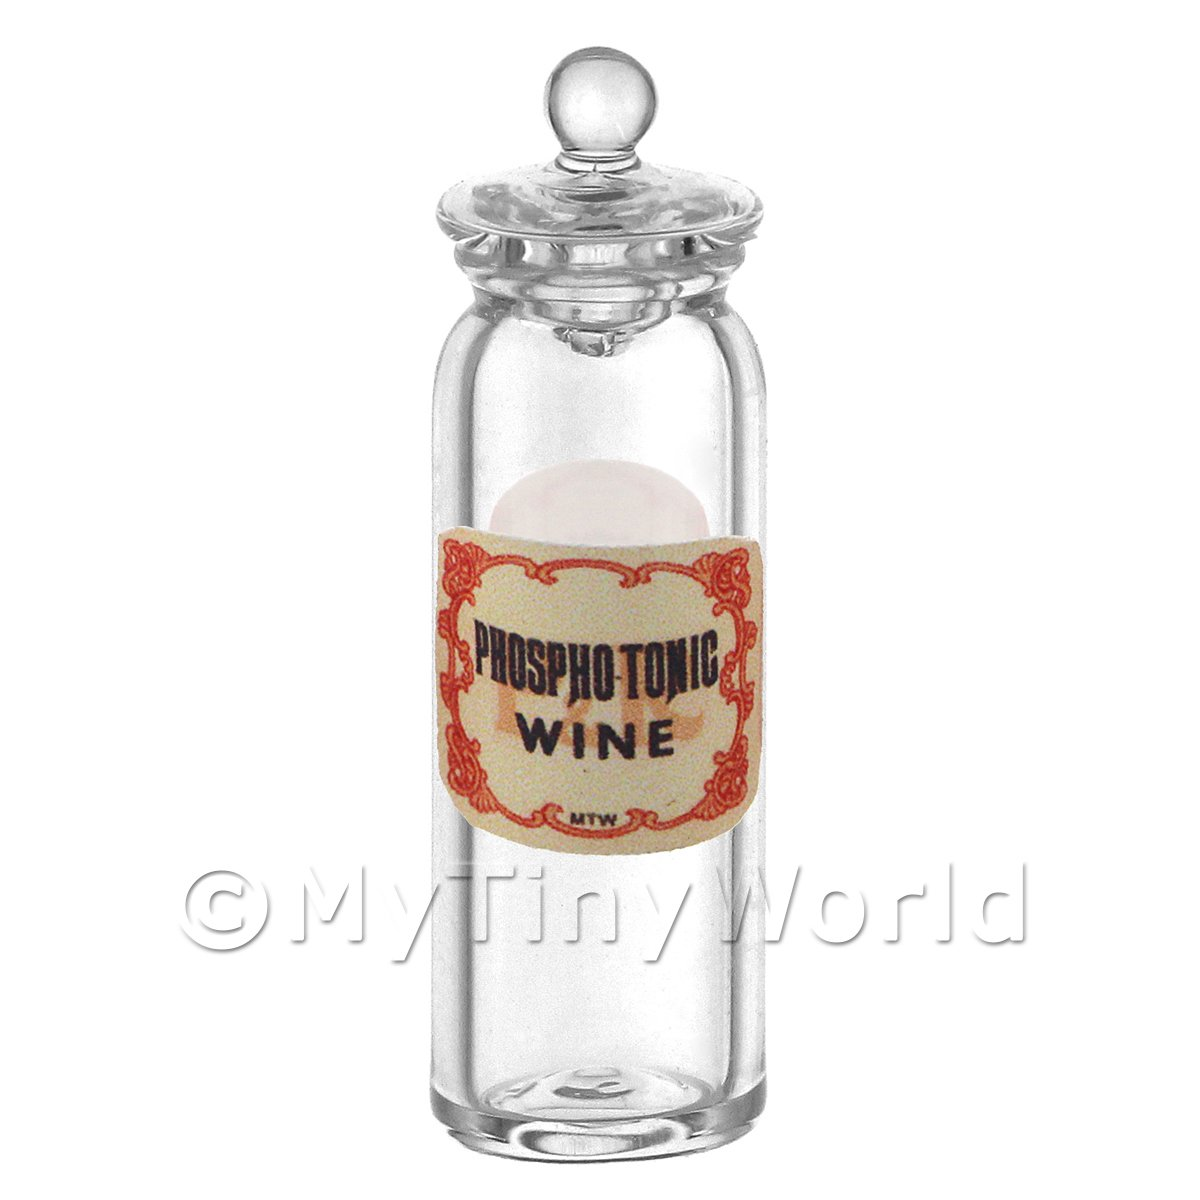 Miniature Phosphotonic Wine Glass Apothecary Jar